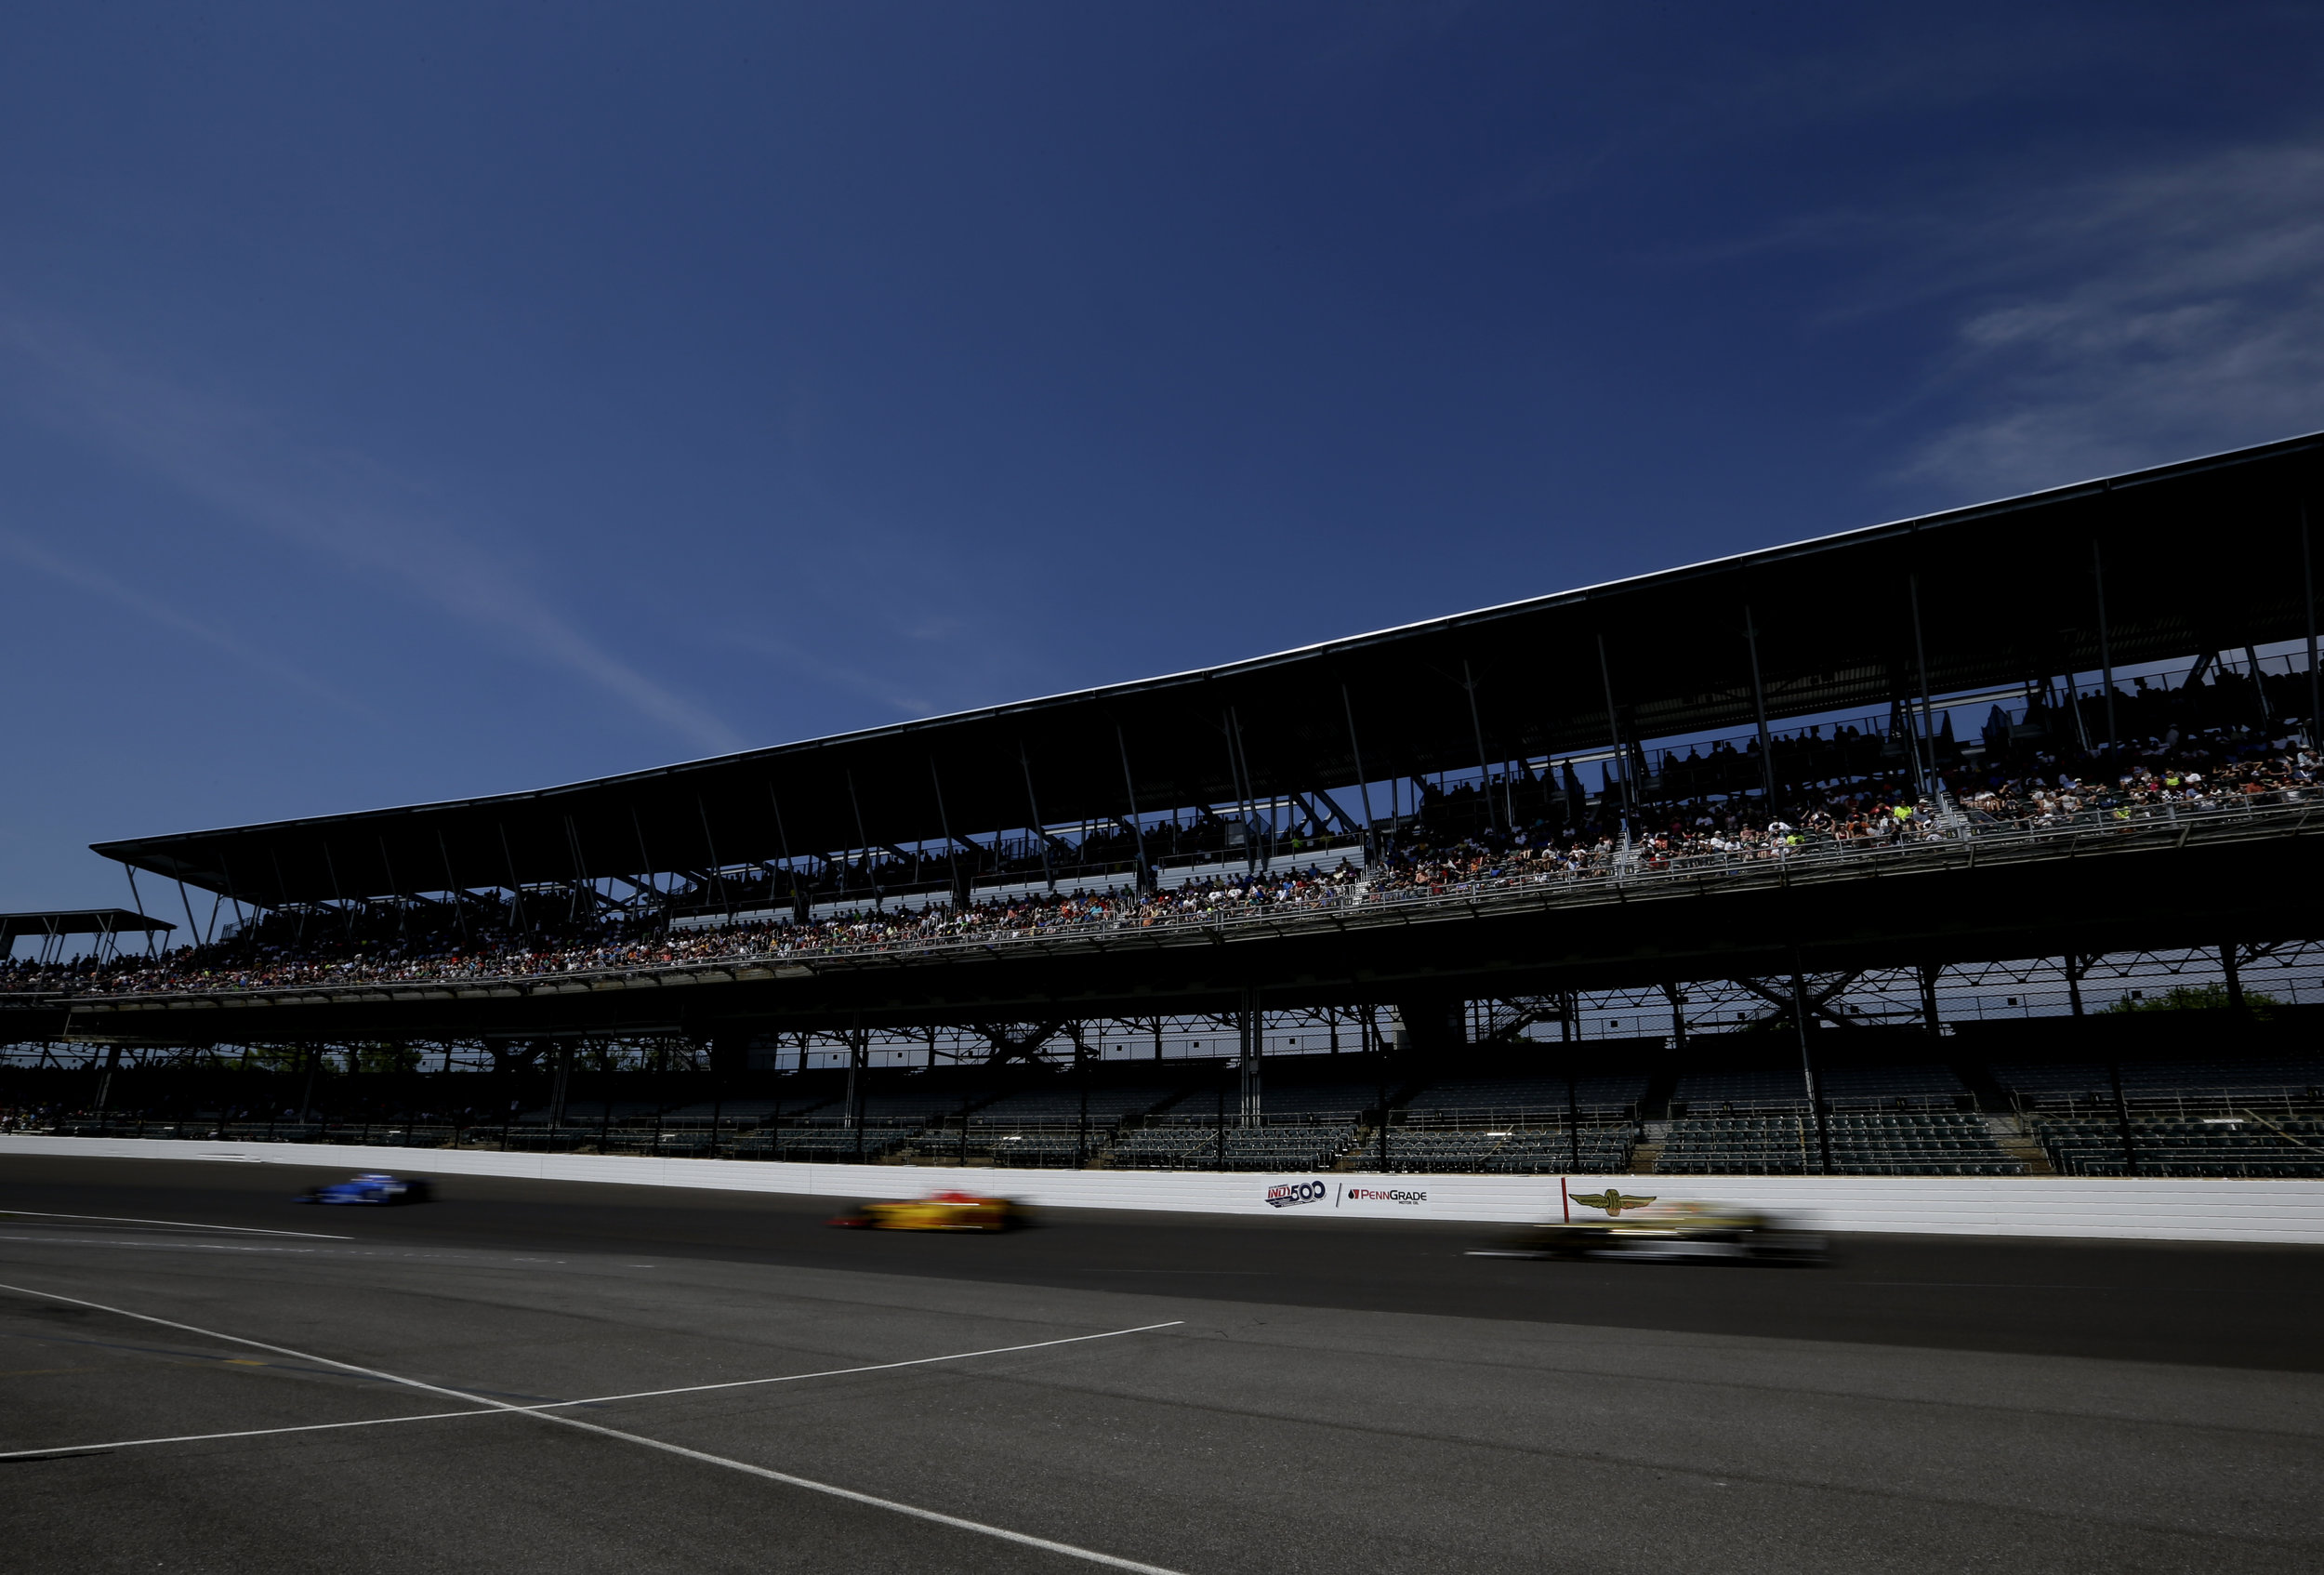 Cars fly by on the track during the practice race on Carb Day for the 101st running of the Indianapolis 500 at Indianapolis Motor Speedway on Friday, May 26, 2017.